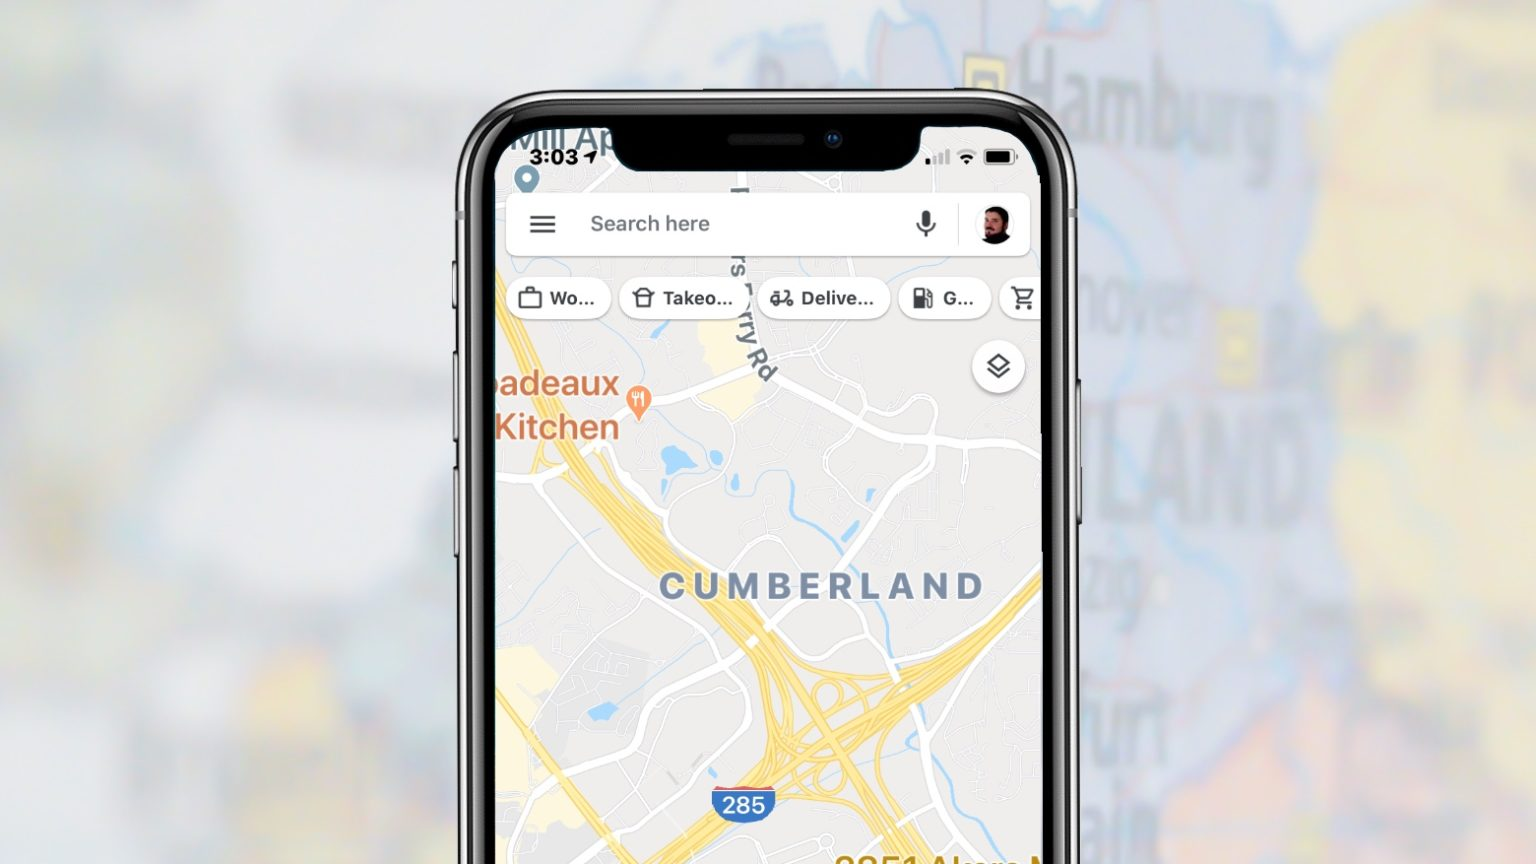 Google Maps adds Takeout and Delivery buttons